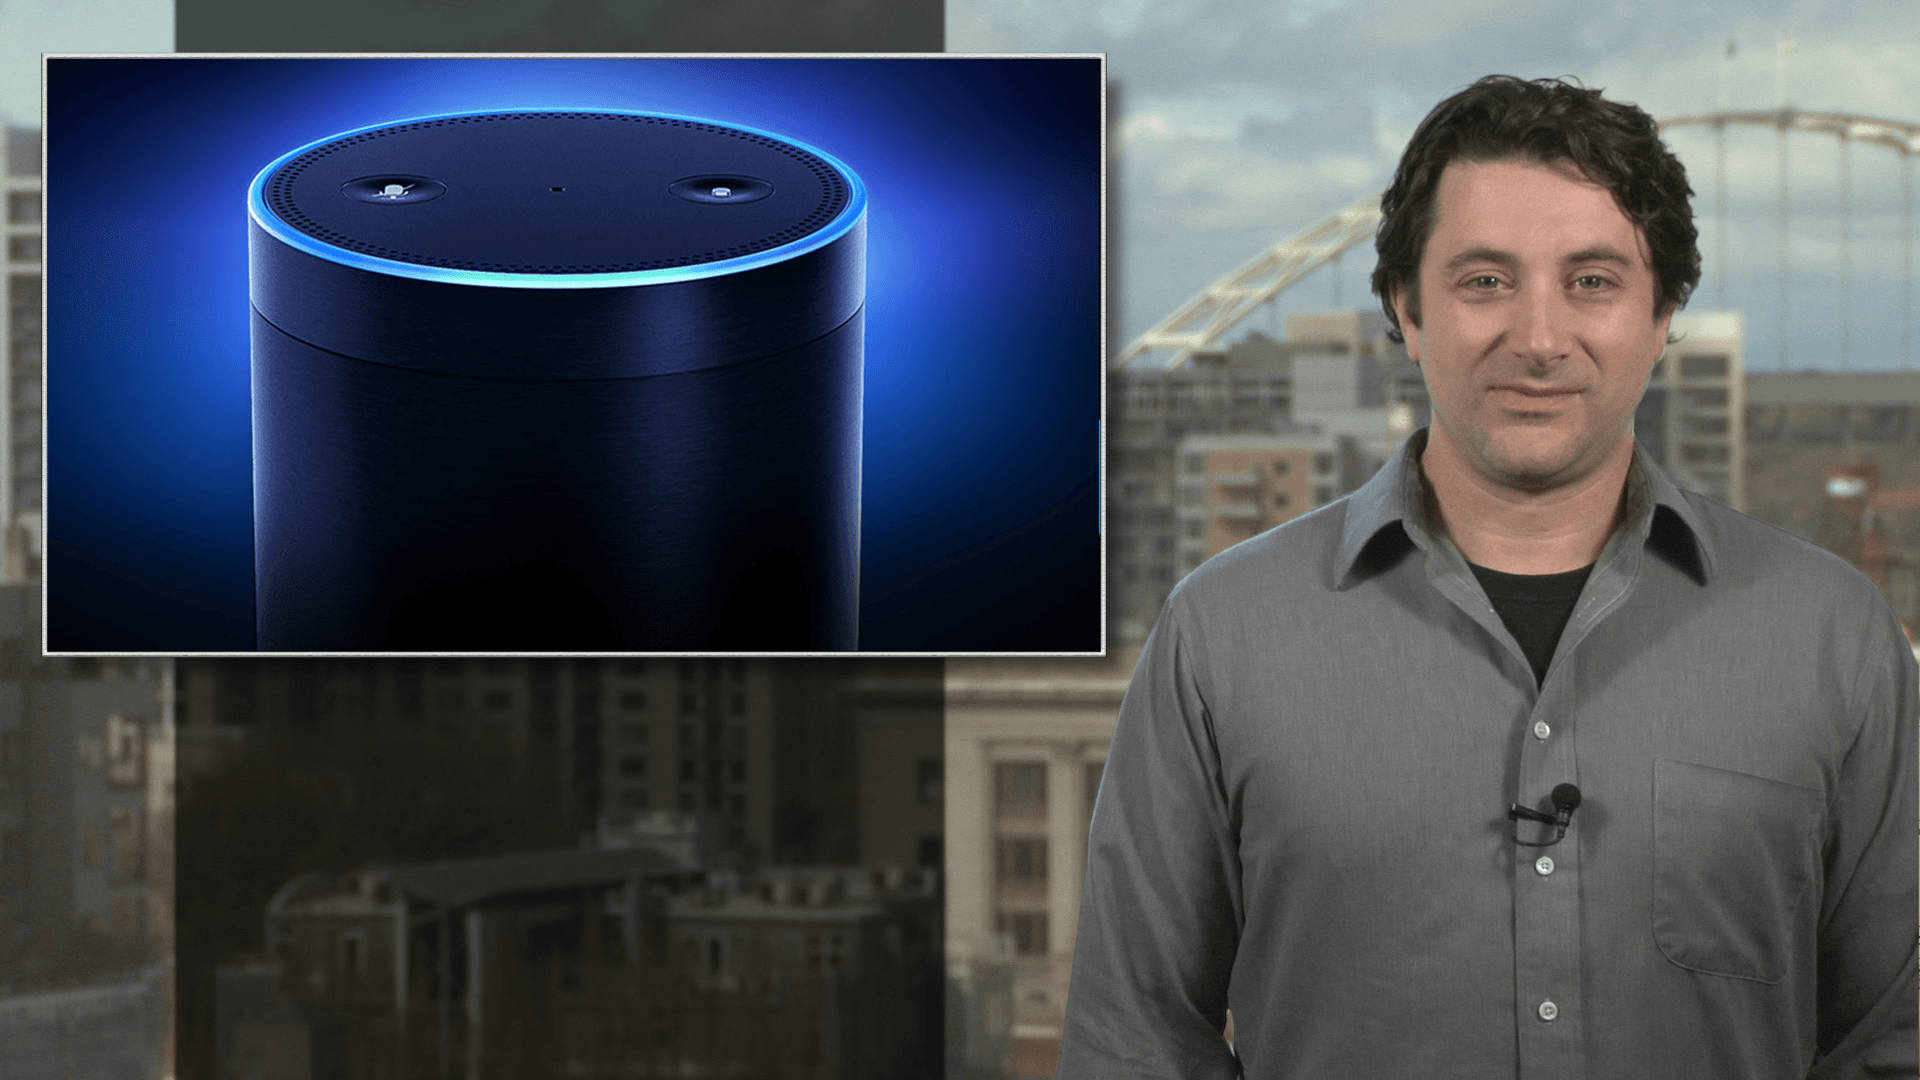 Cops wants data from Amazon Echo device for murder case